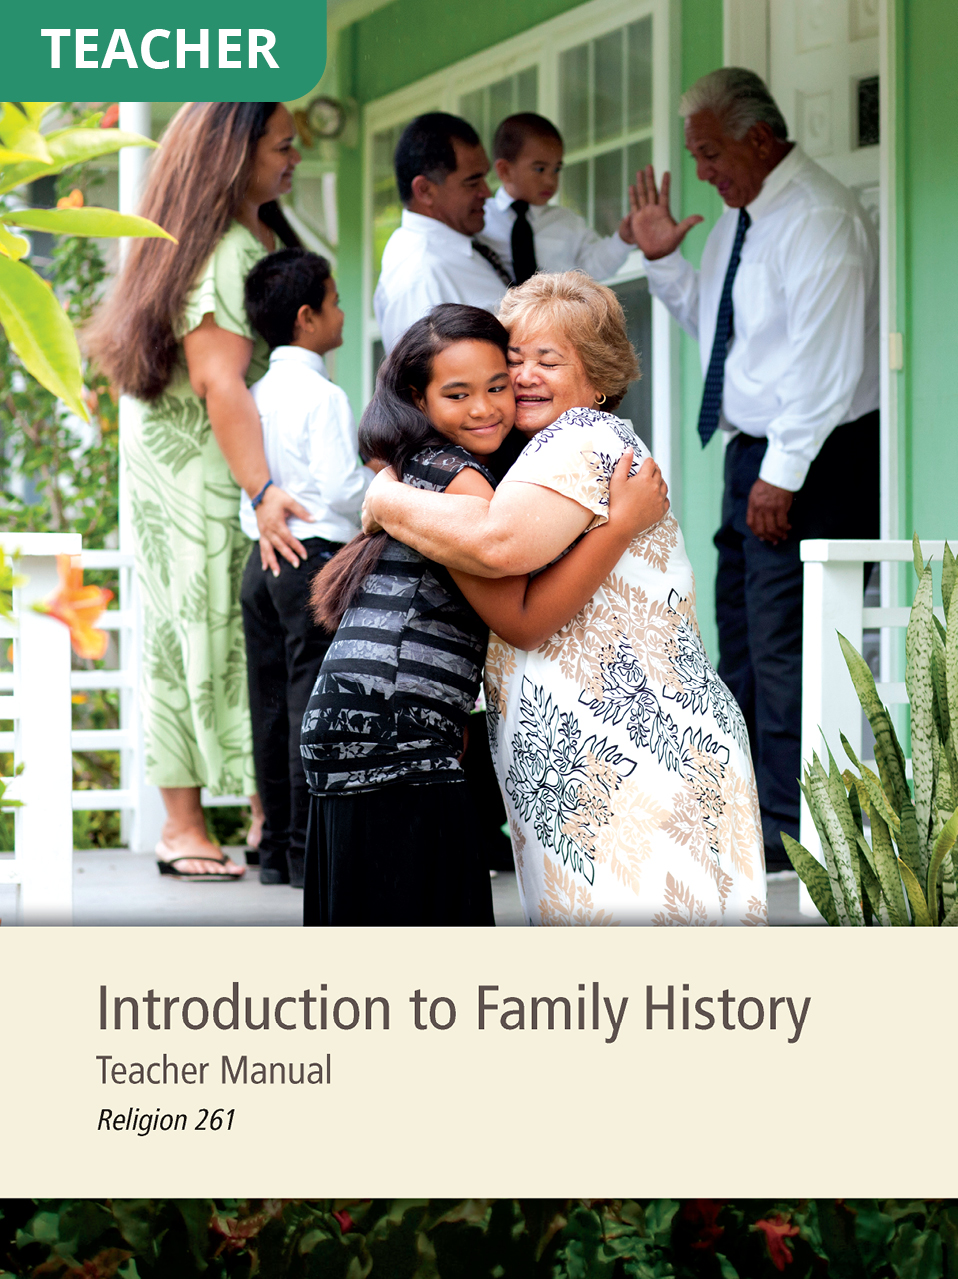 Introduction to Family History Teacher Manual (Rel 261)